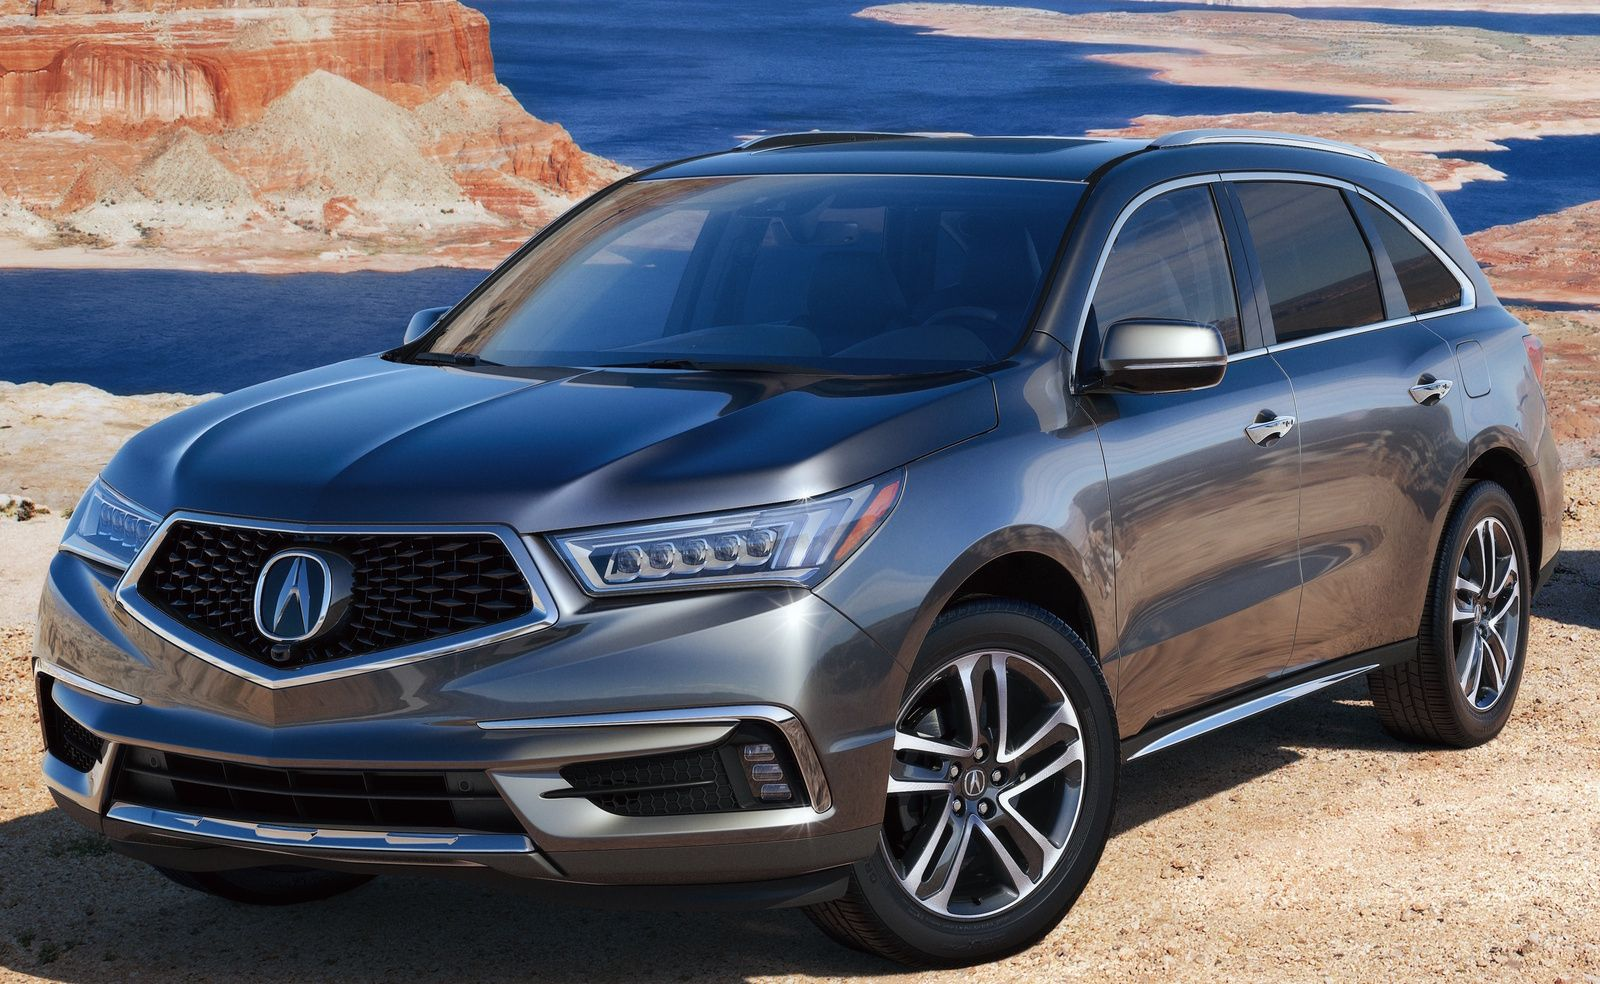 2017 Acura Mdx For Sale In Charleston Wv Cargurus Acura Mdx Car And Motorcycle Design Acura